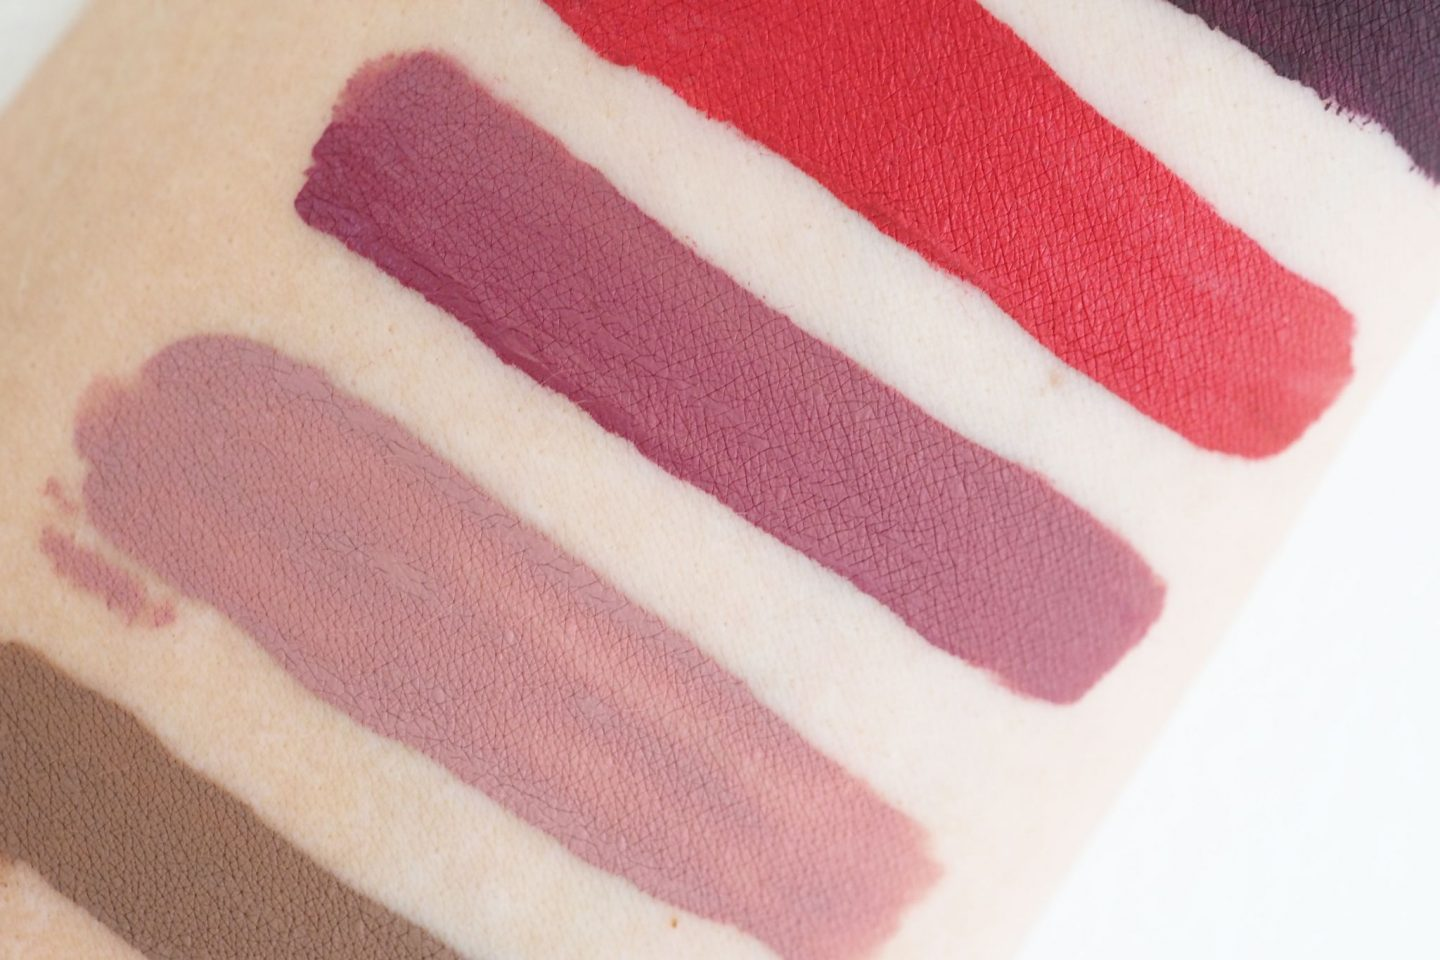 Stila Stay All Day Liquid Lipstick swatches